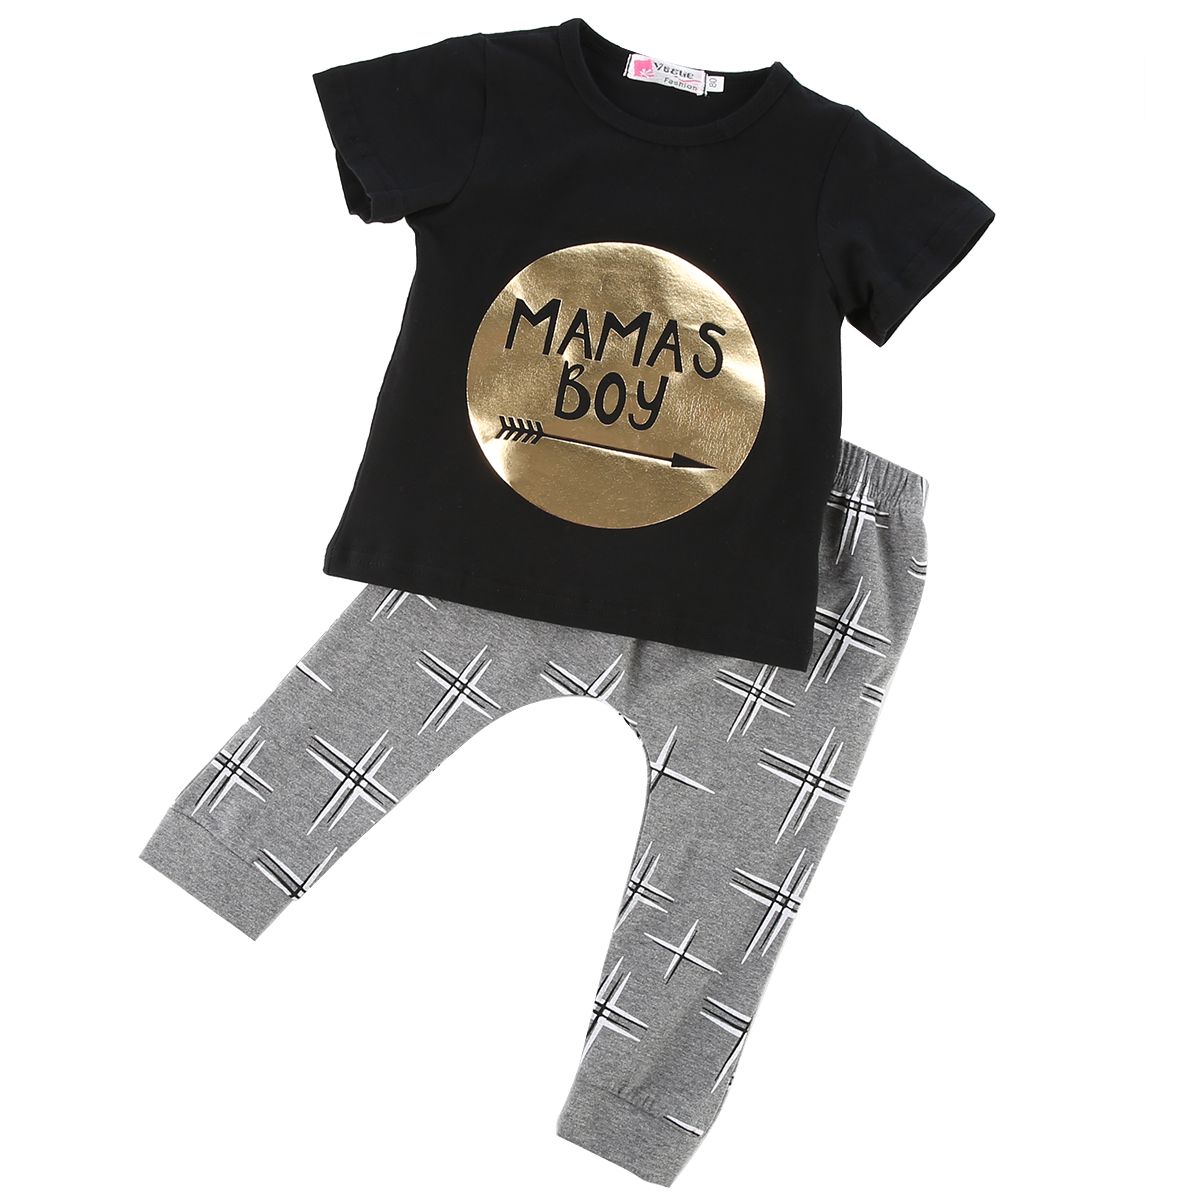 2016 2pcs Newborn Infant Baby Boys Kids Fashion Clothes Sets baby T-shirt Tops+Long Pants Outfits Sets 0-24M